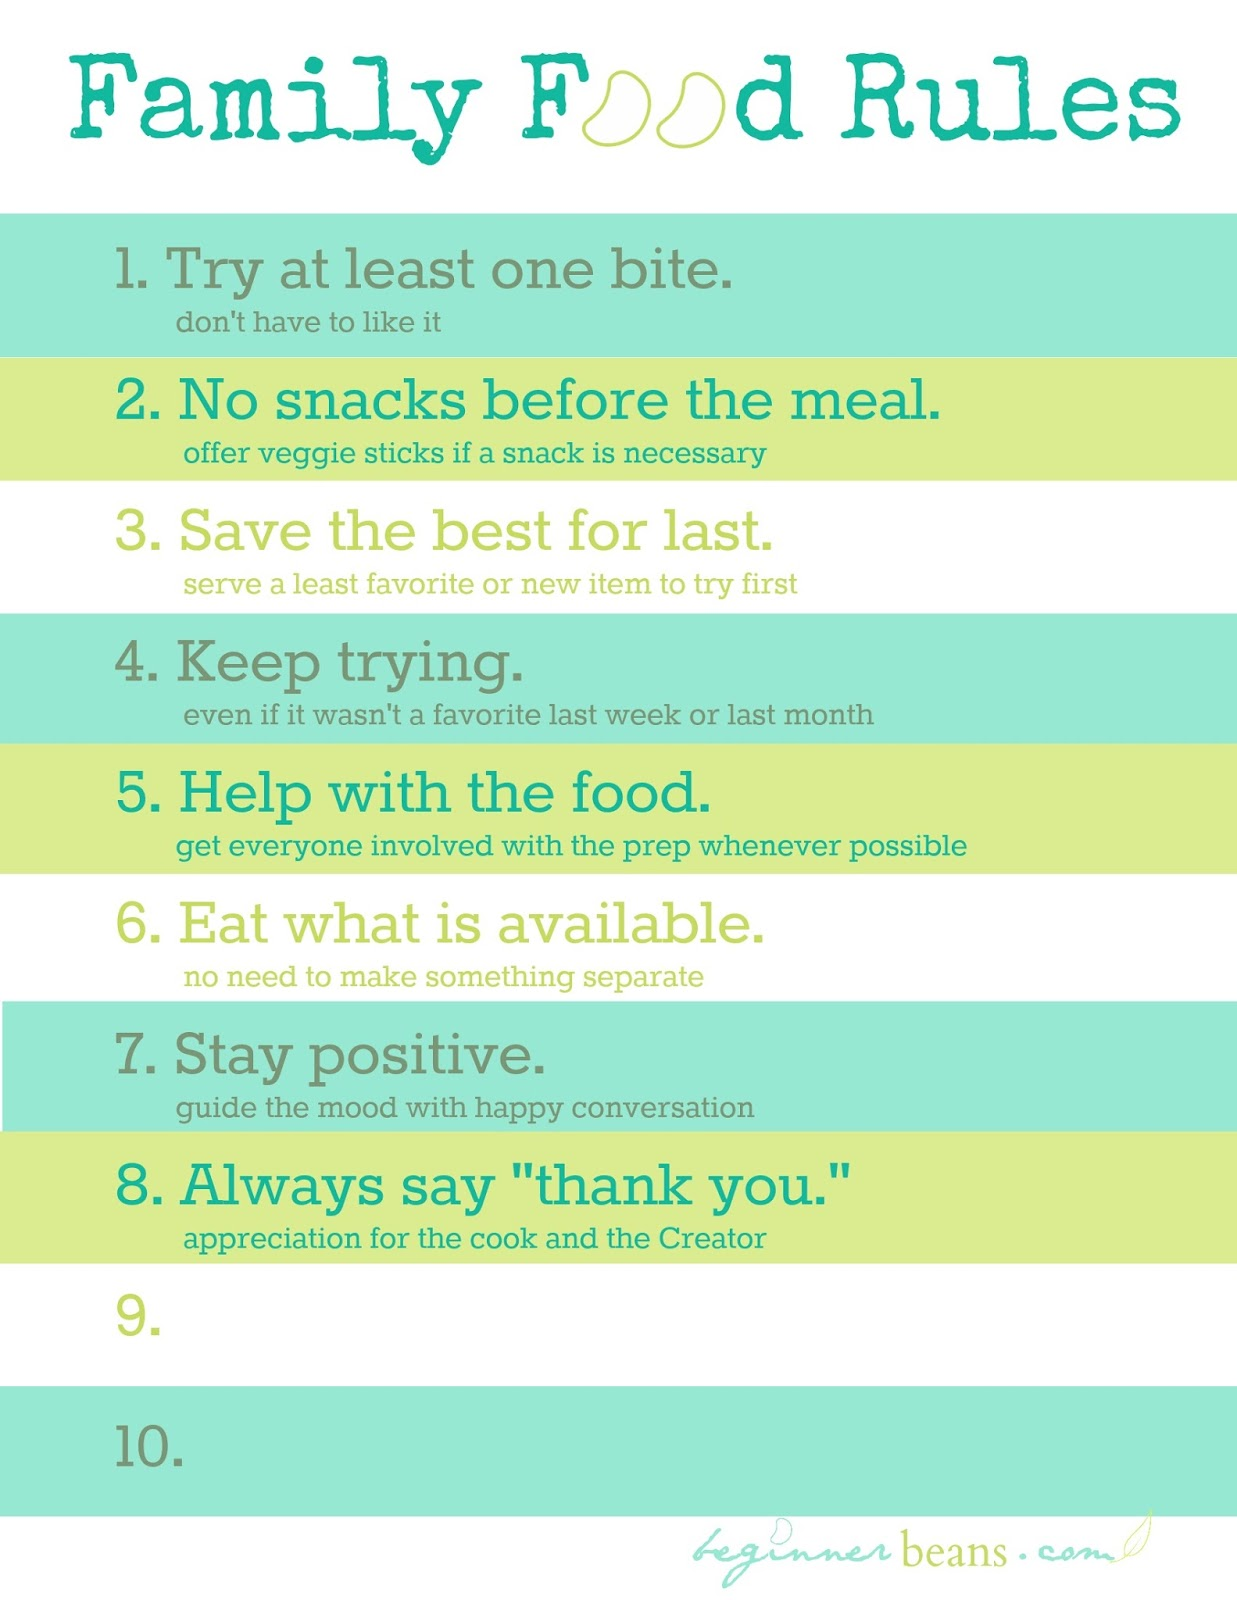 Family Food Rules for Picky-Eaters